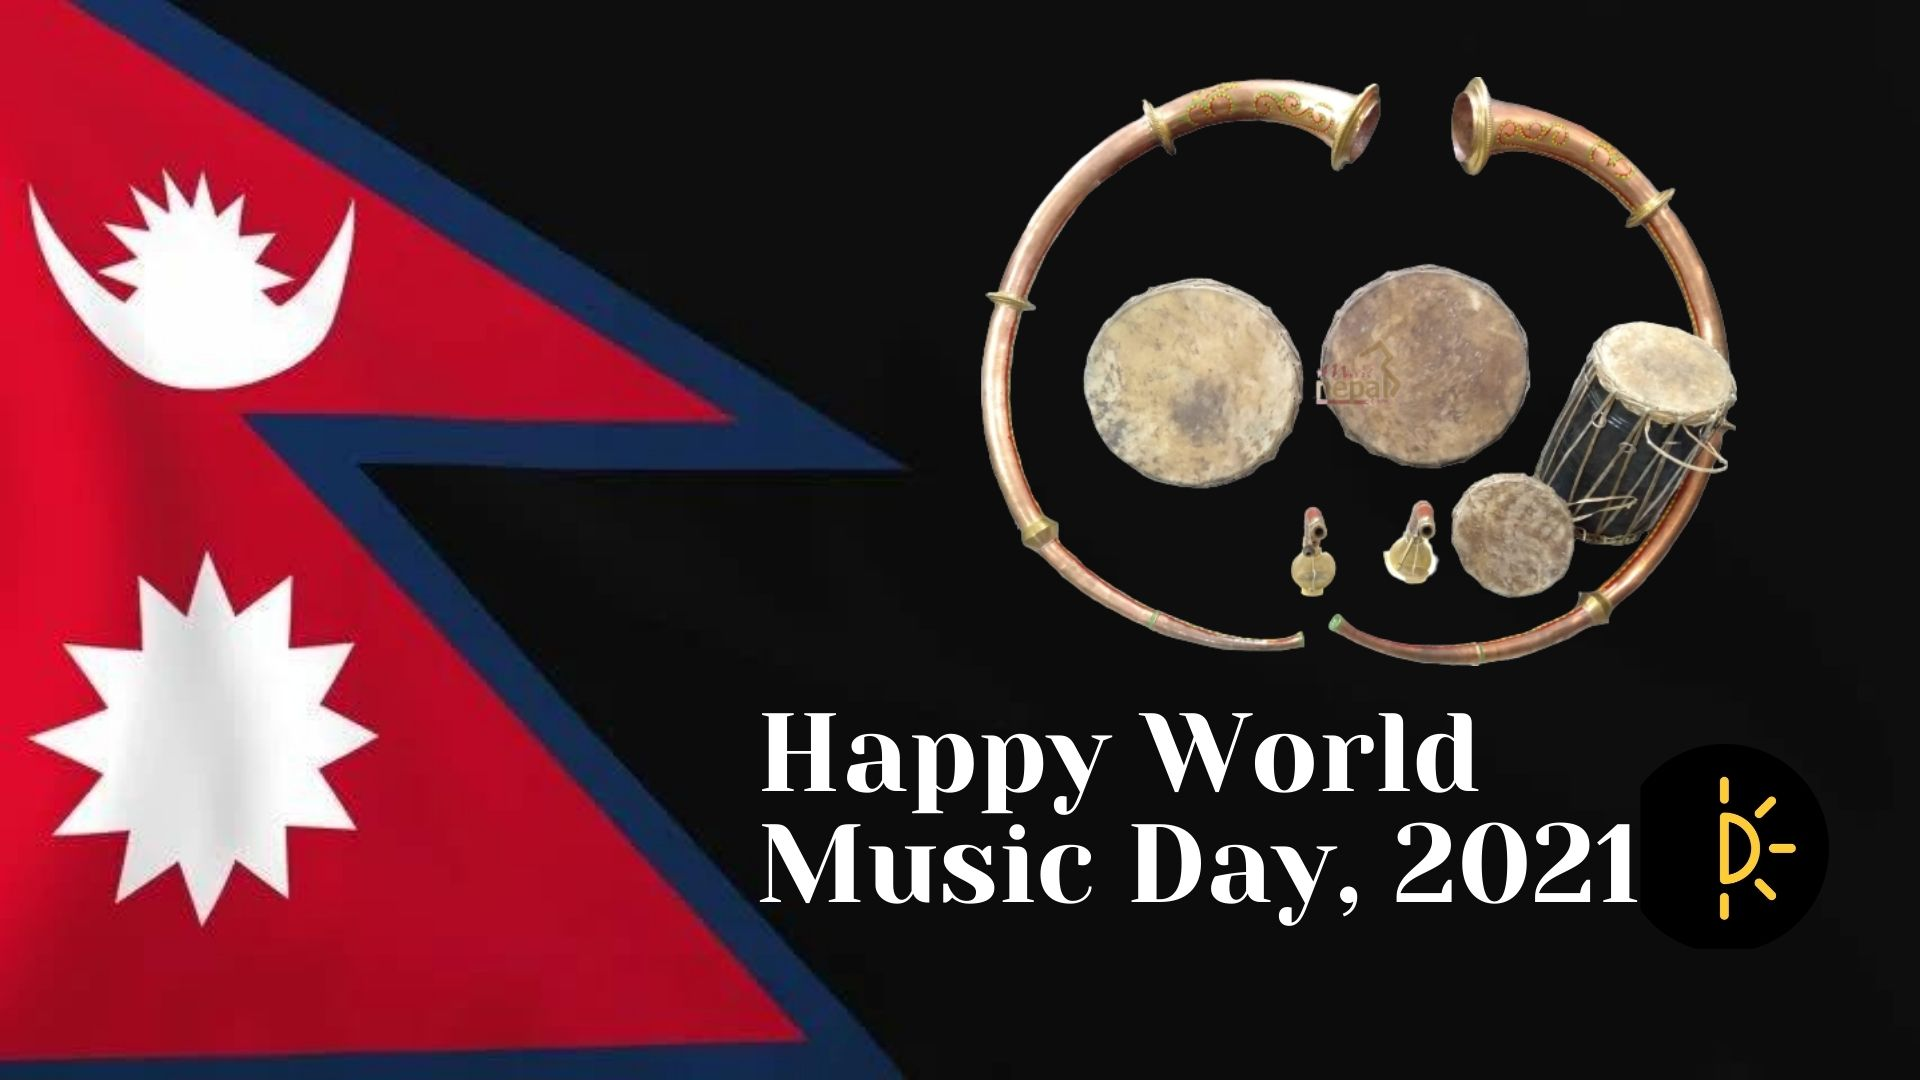 Celebrate World Music Day 2021 with Music and Words